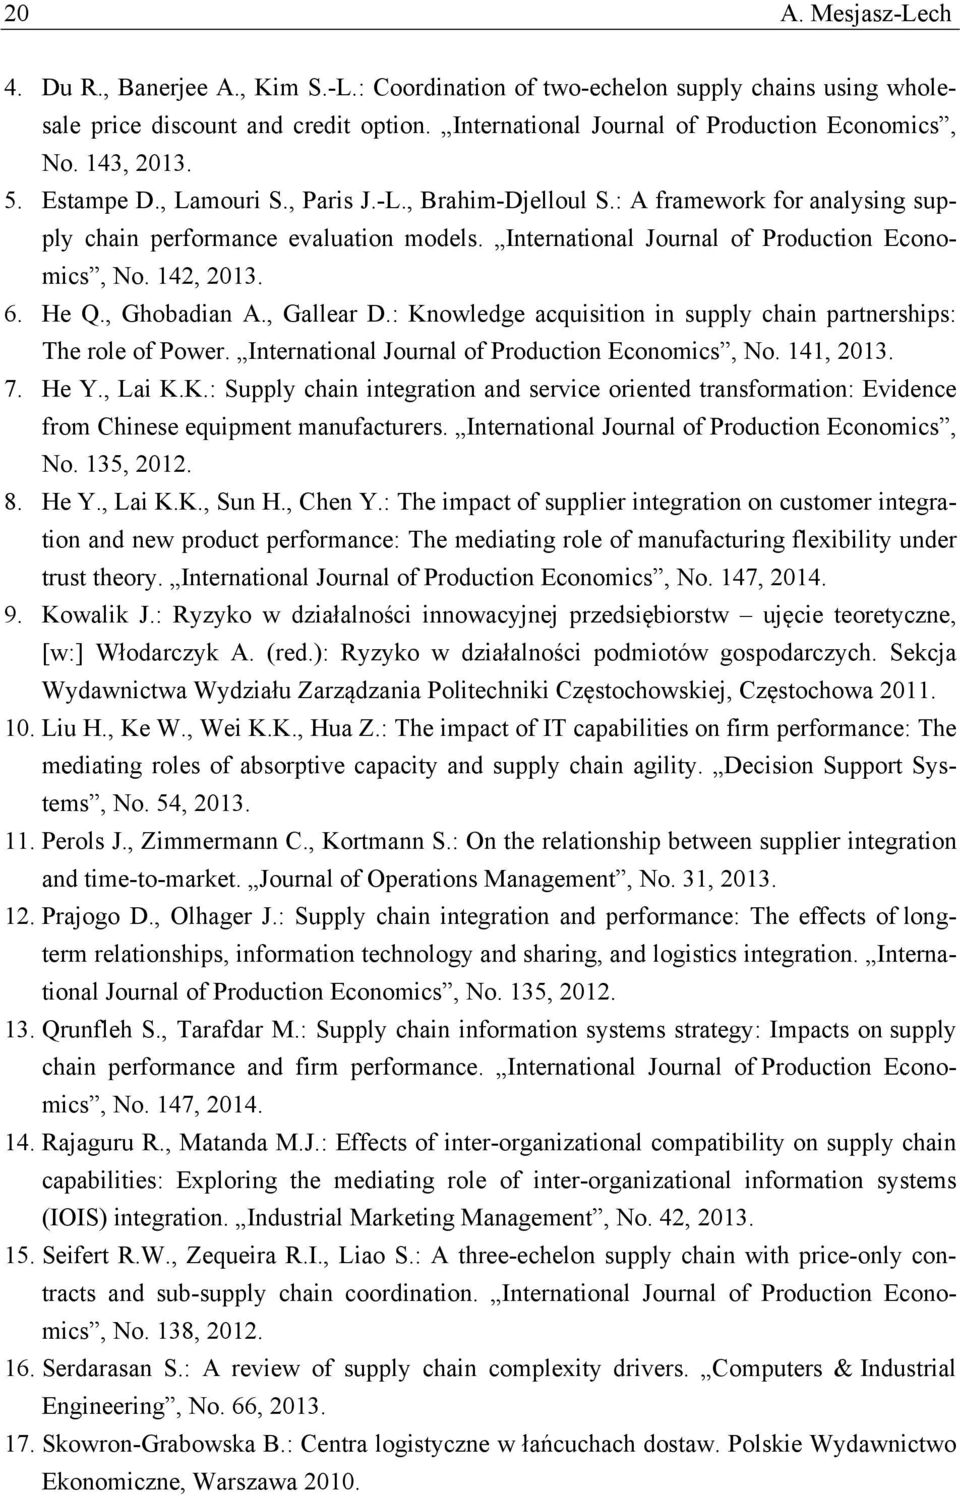 142, 2013. 6. He Q., Ghobadian A., Gallear D.: Knowledge acquisition in supply chain partnerships: The role of Power. International Journal of Production Economics, No. 141, 2013. 7. He Y., Lai K.K.: Supply chain integration and service oriented transformation: Evidence from Chinese equipment manufacturers.